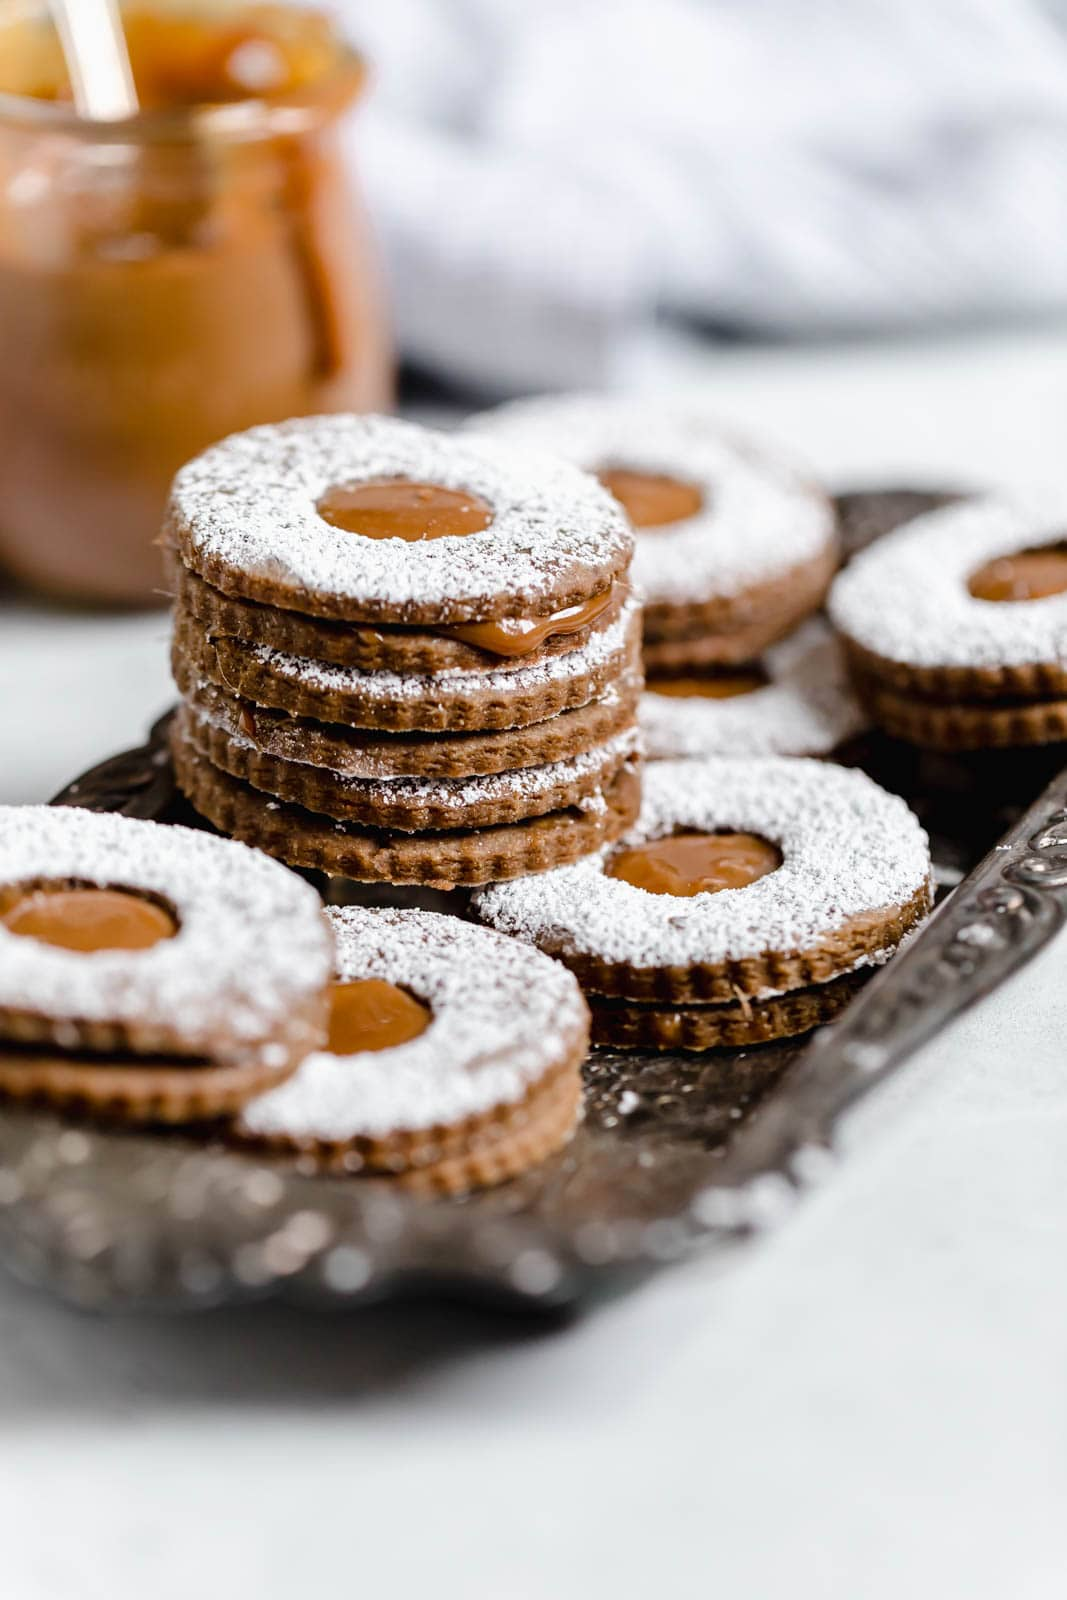 Gingerbread Linzer Cookies with dulce de leche filling